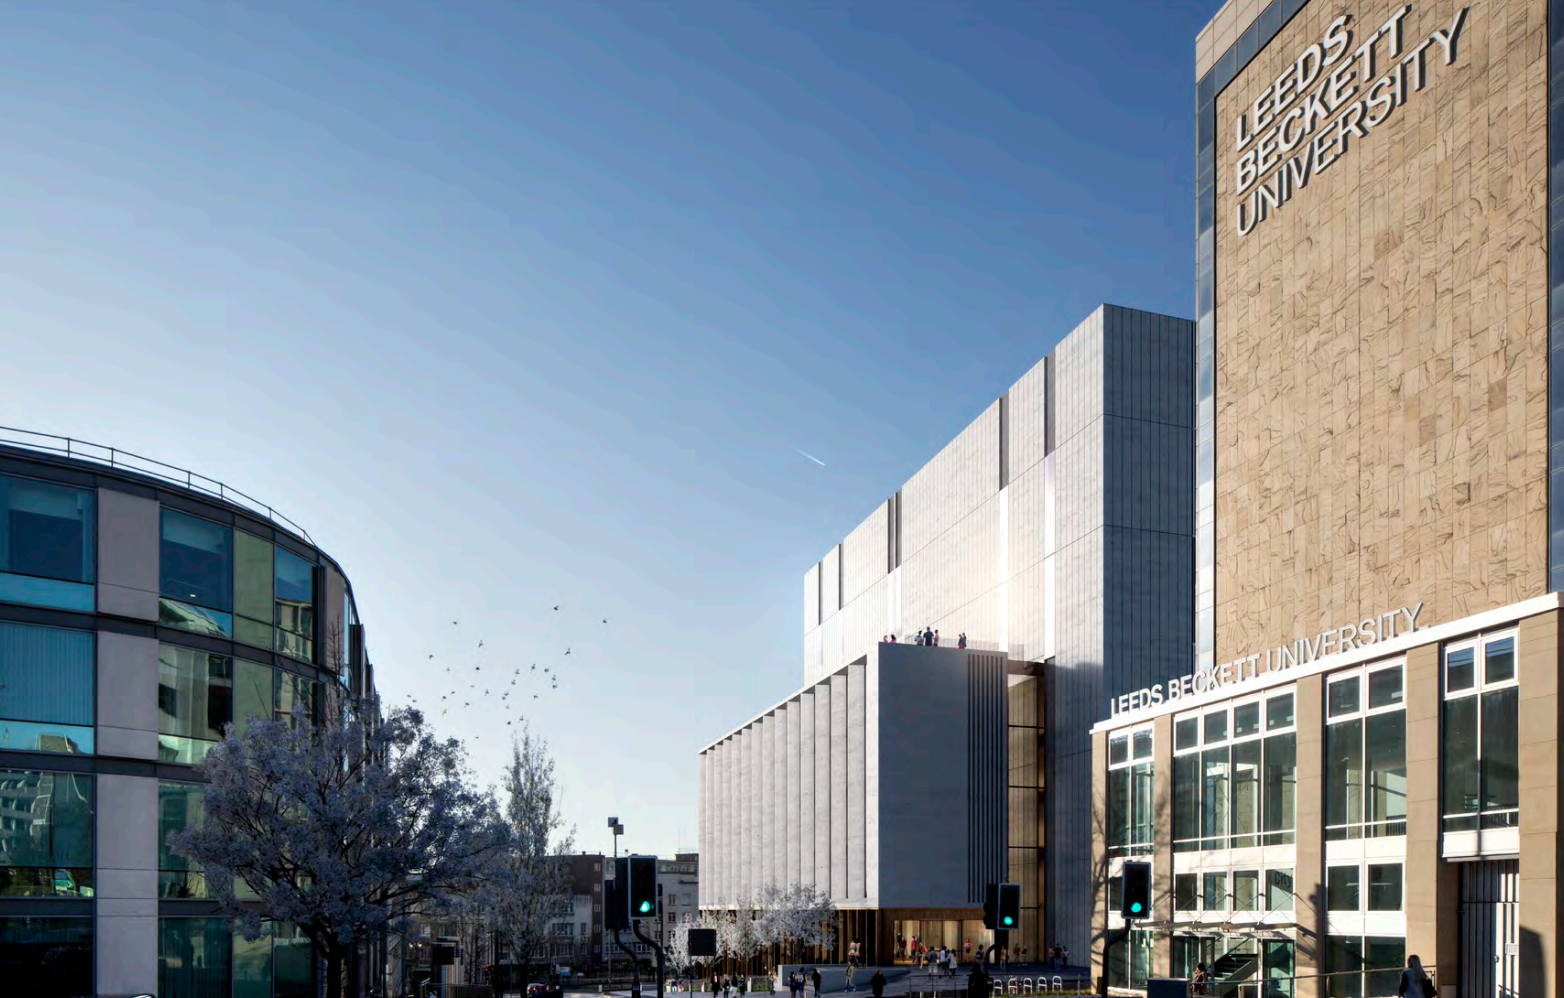 Leeds Beckett University creative arts